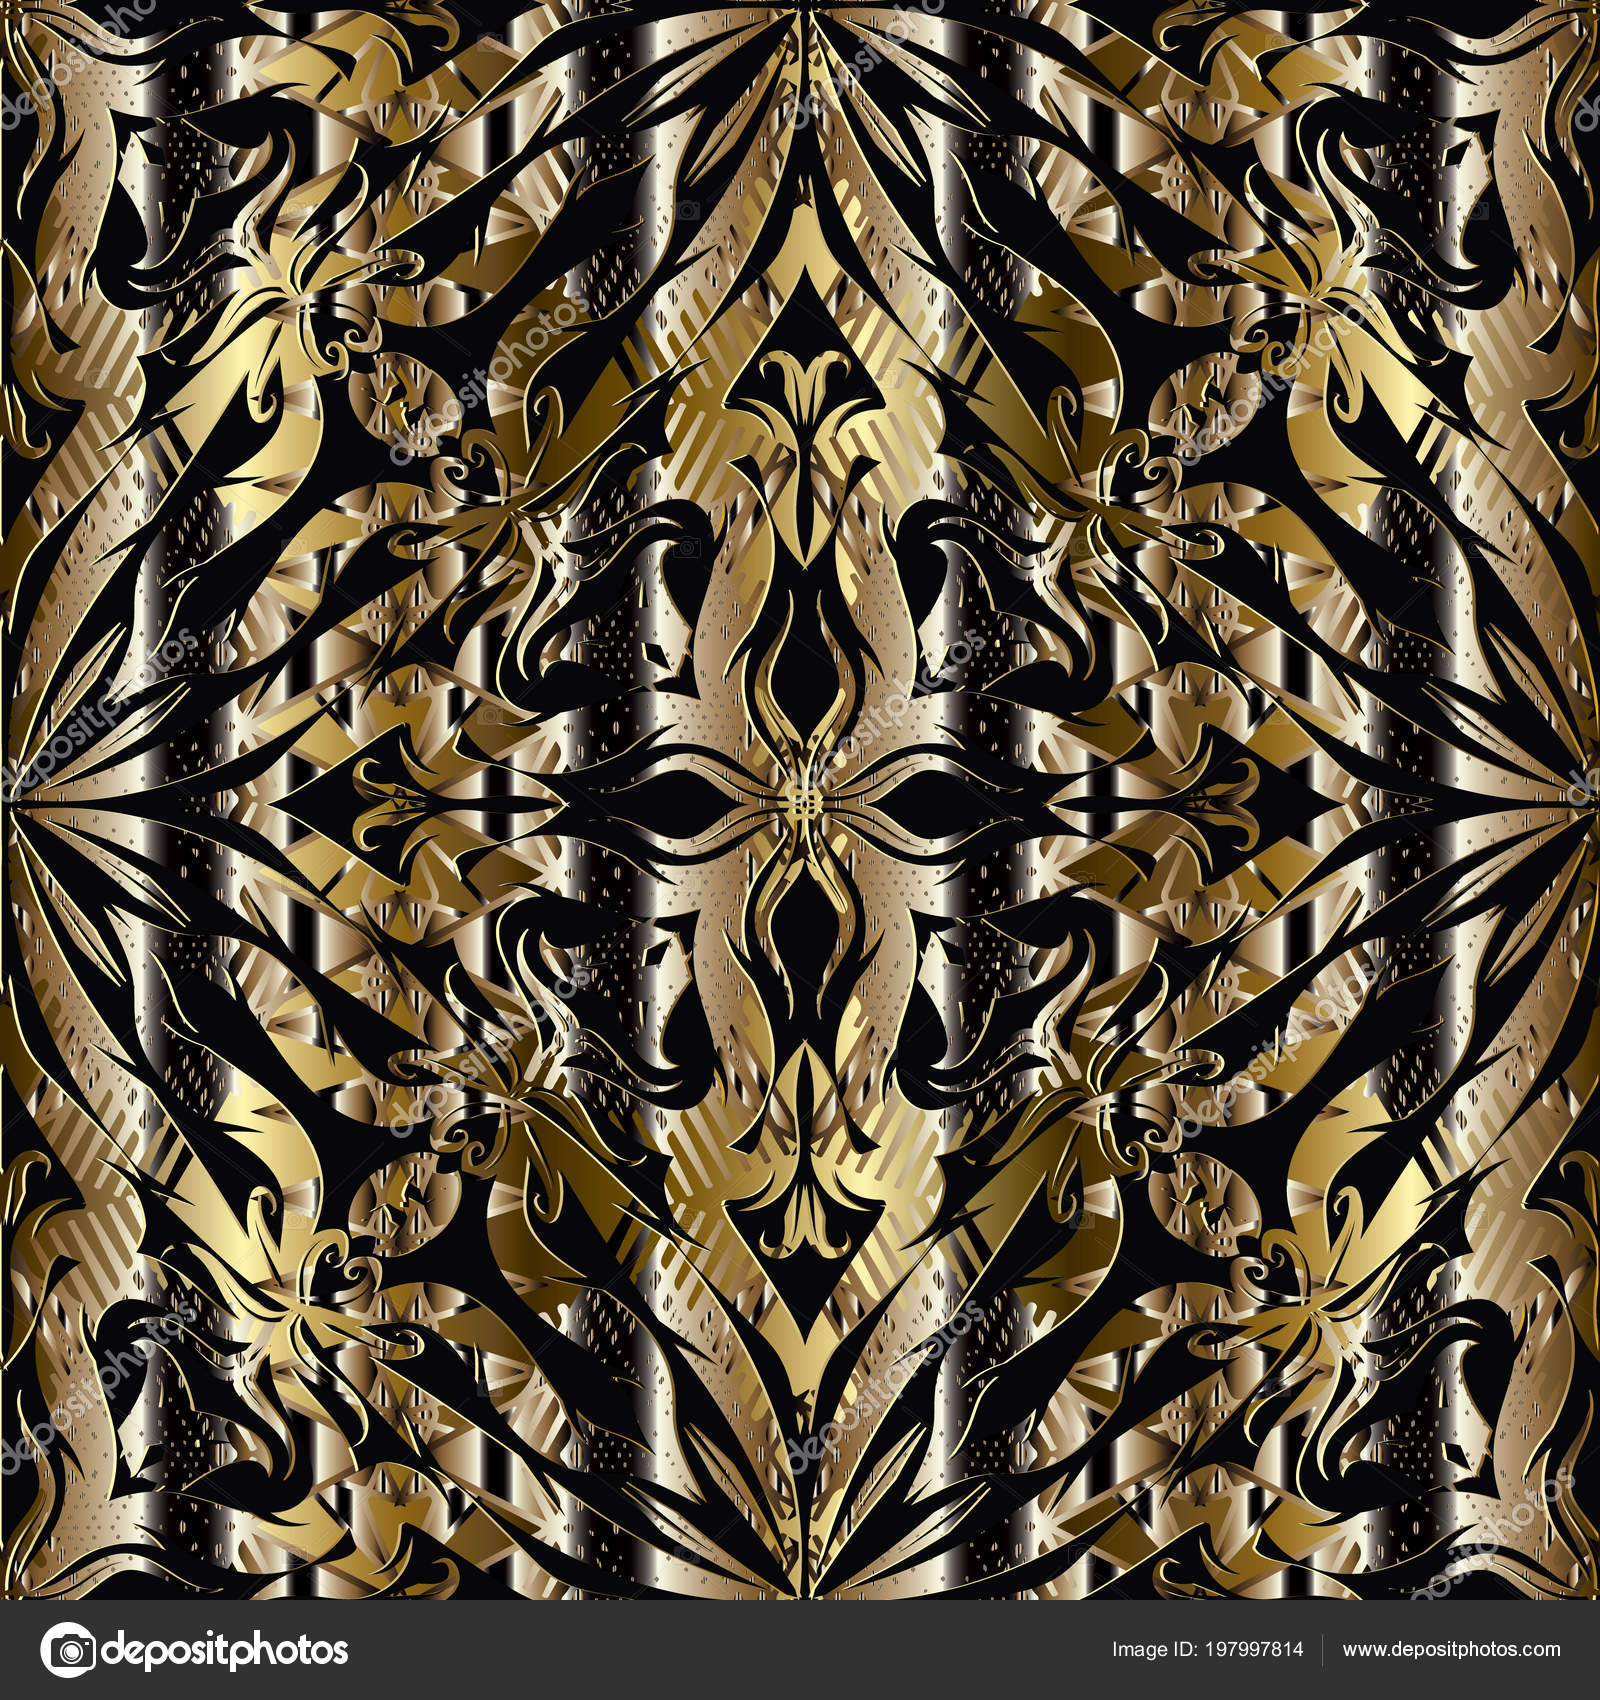 3D Abstract Floral Gold Black Seamless Pattern Striped Ornamental Vintage